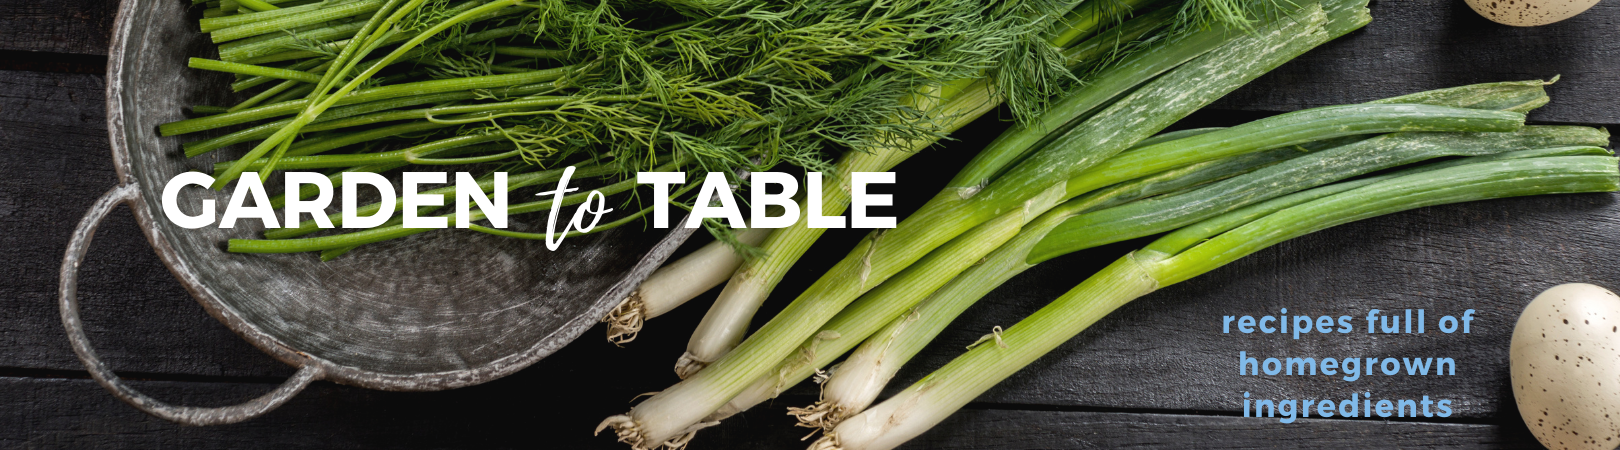 garden to table web banner